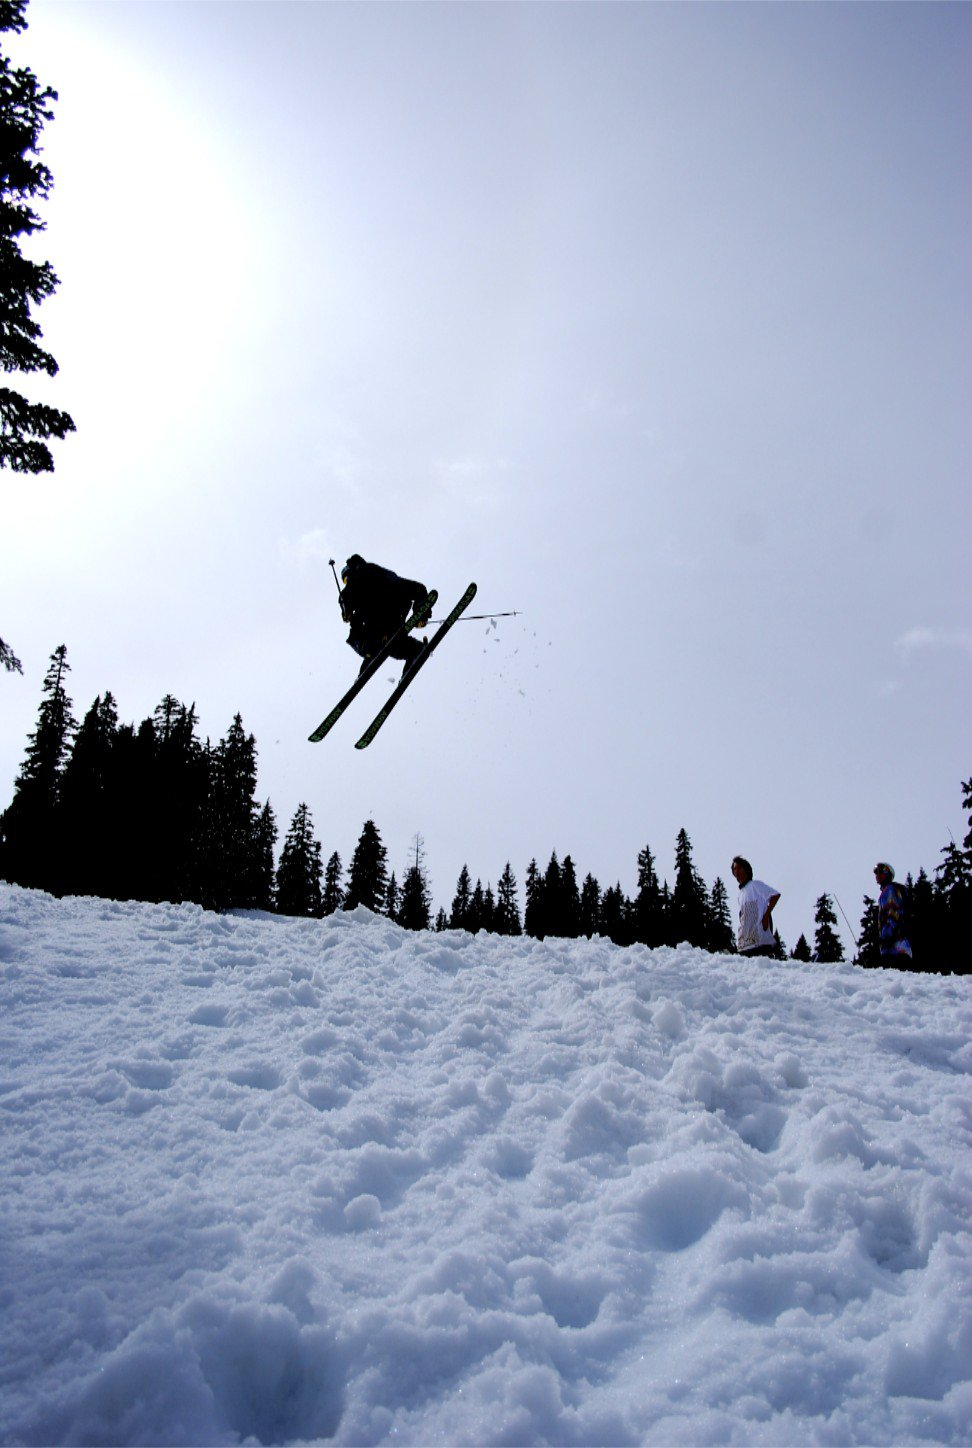 Stevens pass post season jump